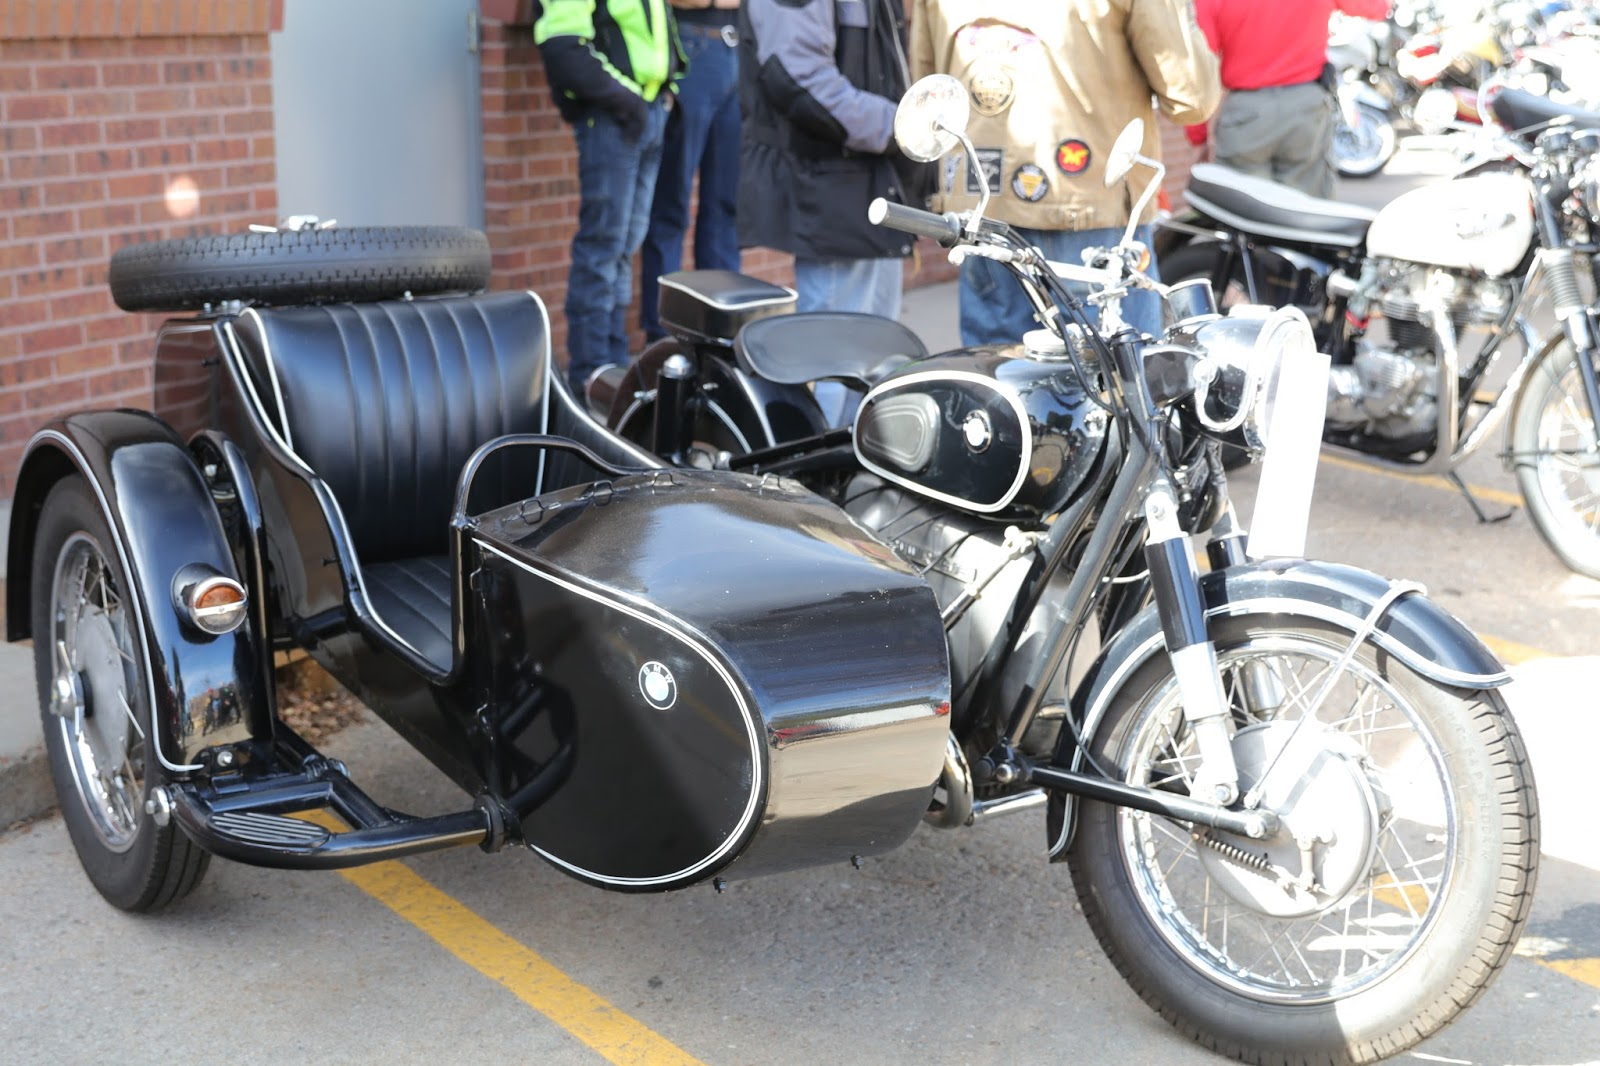 Oldmotodude 1958 Bmw R75 With Sidecar On Display At The 2018